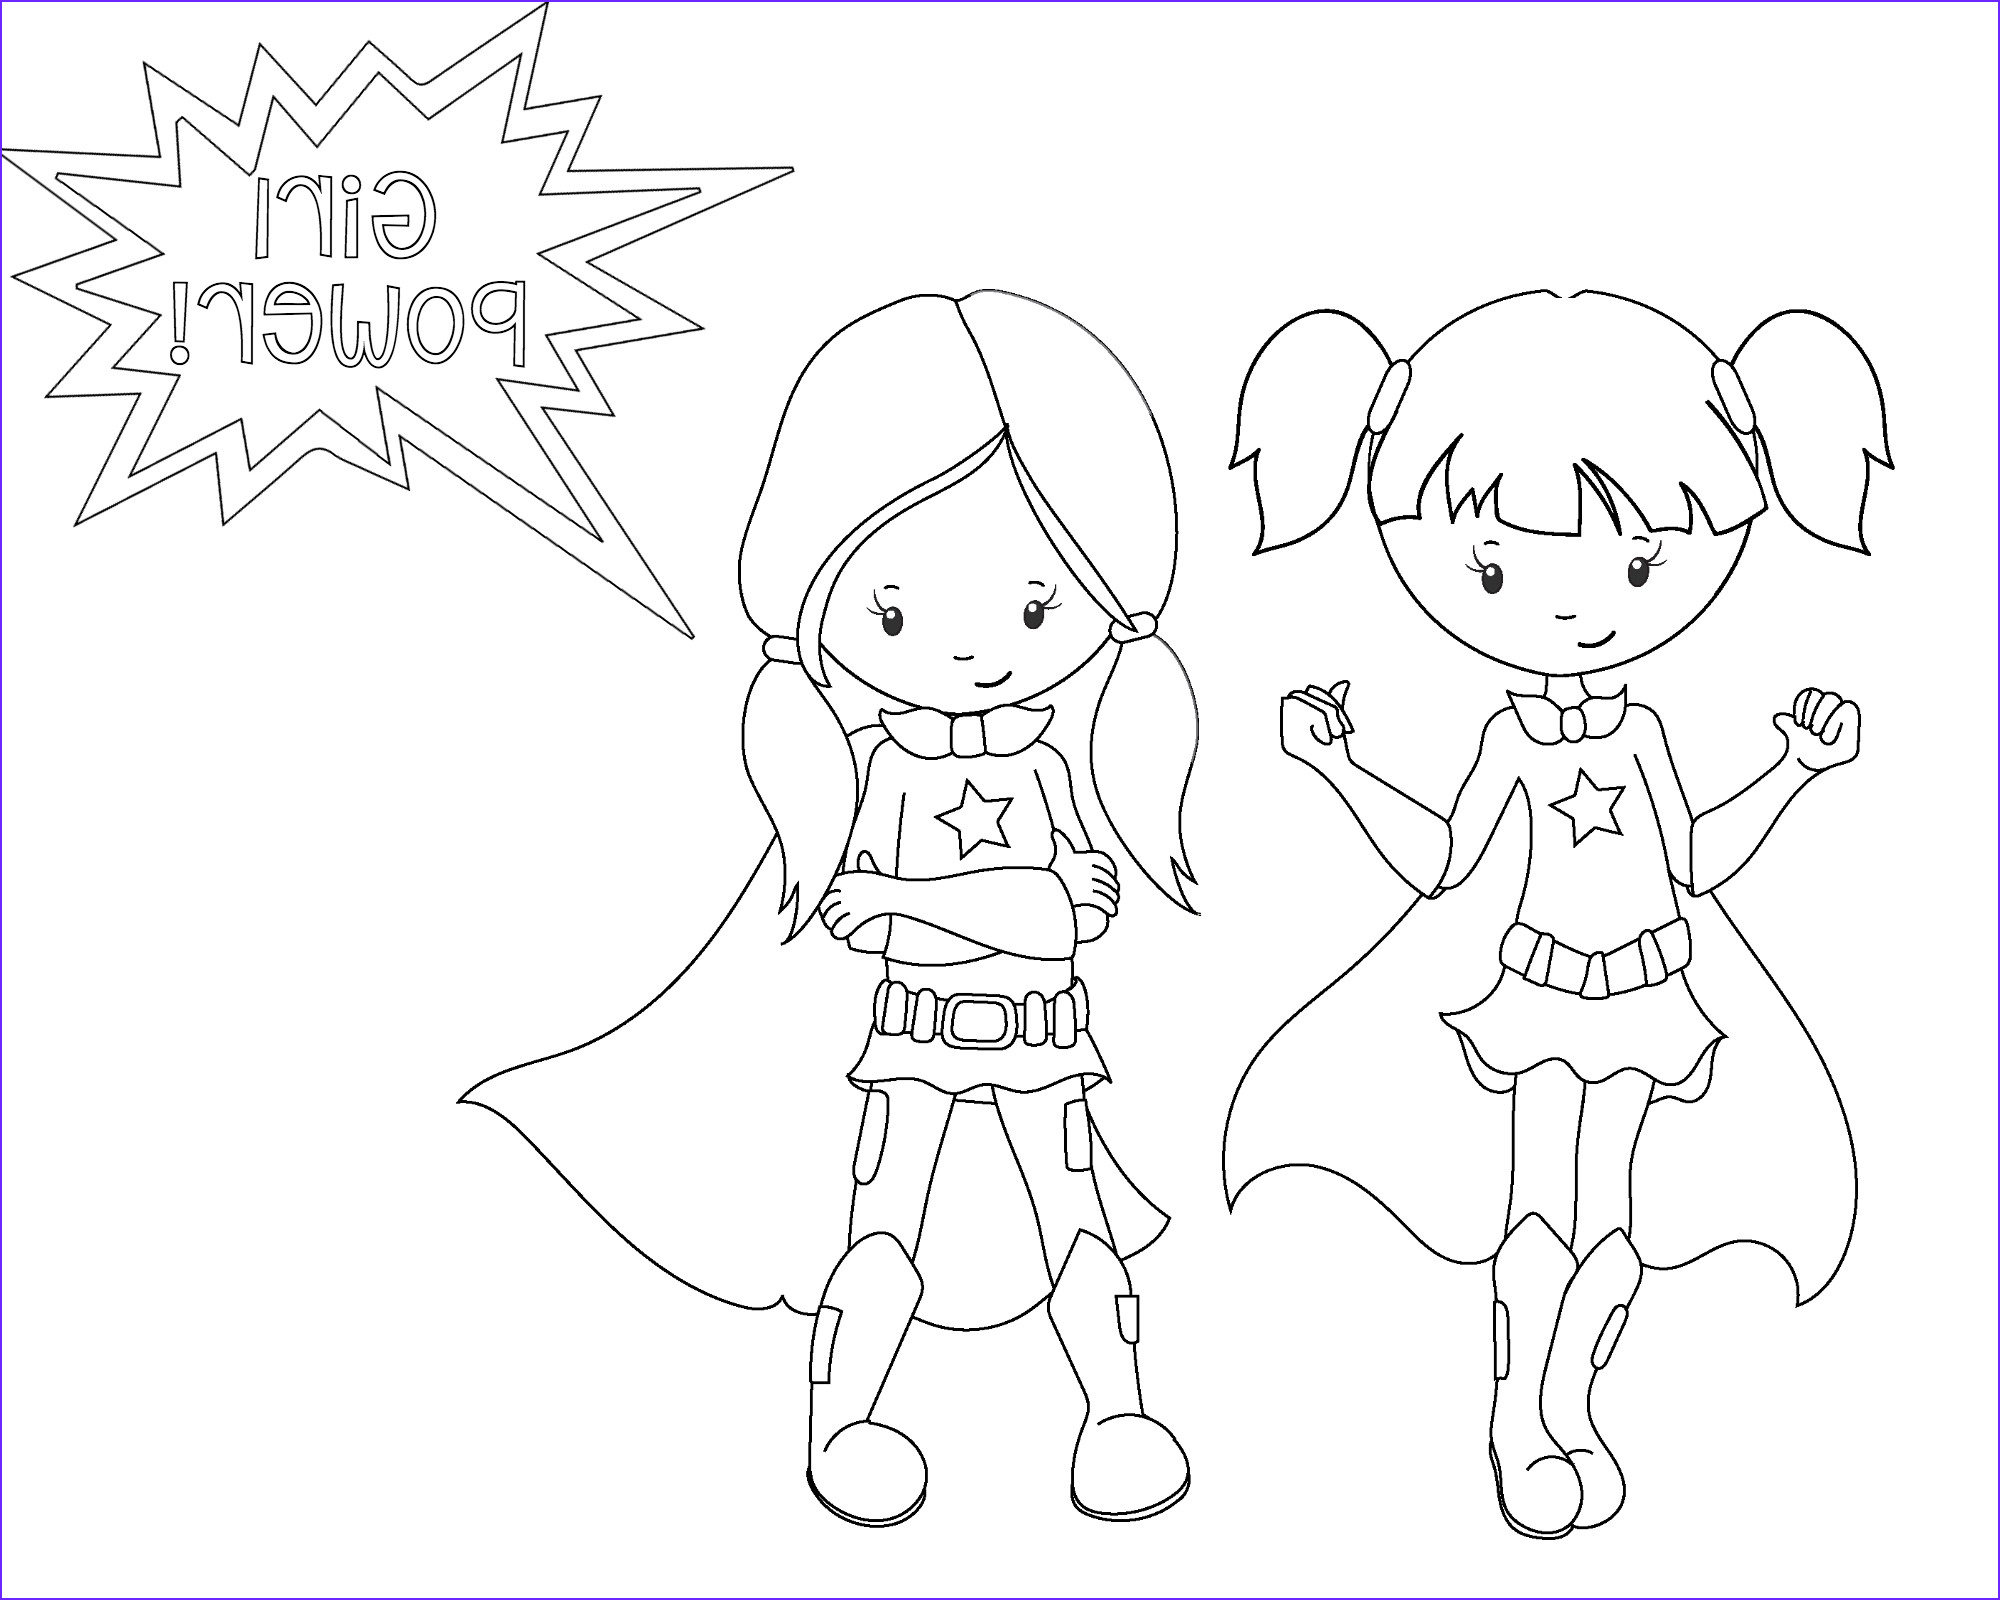 Superhero Coloring Pages Beautiful Photography Superhero Coloring Pages Crazy Little Projects